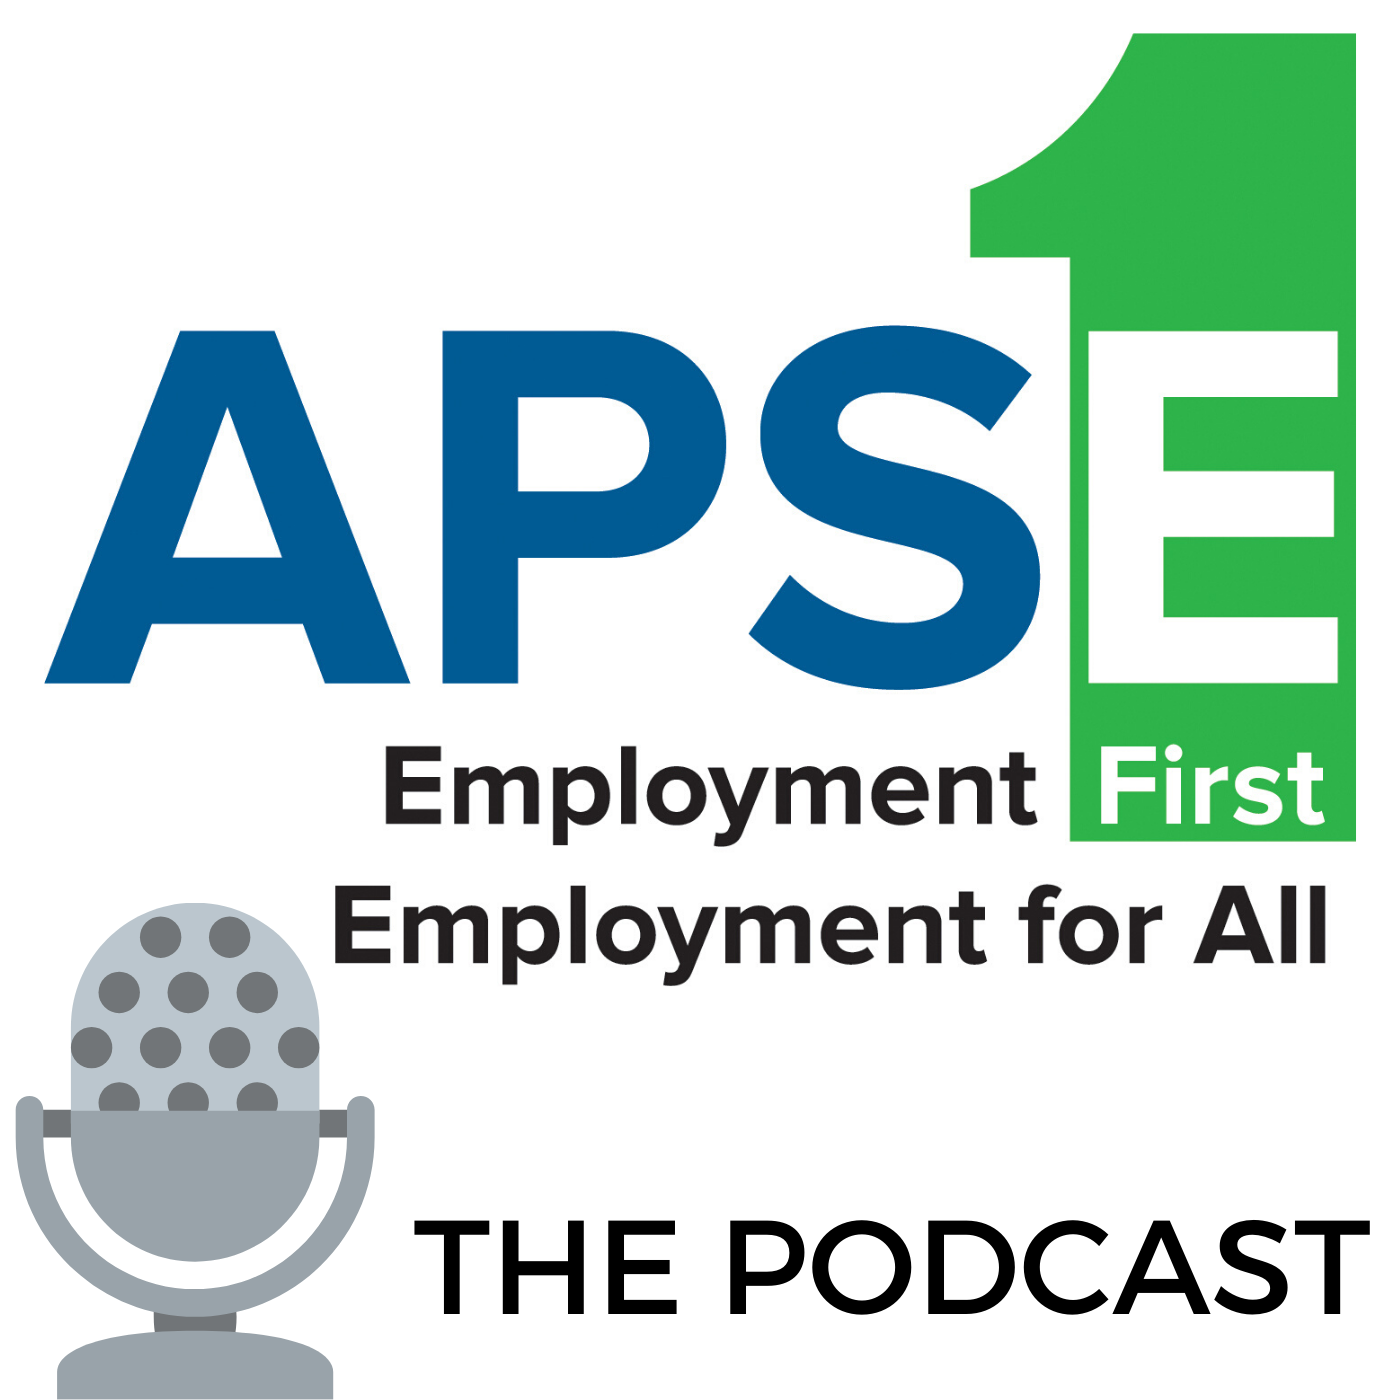 APSE Employment First, Employment for All. The Podcast with microphone.